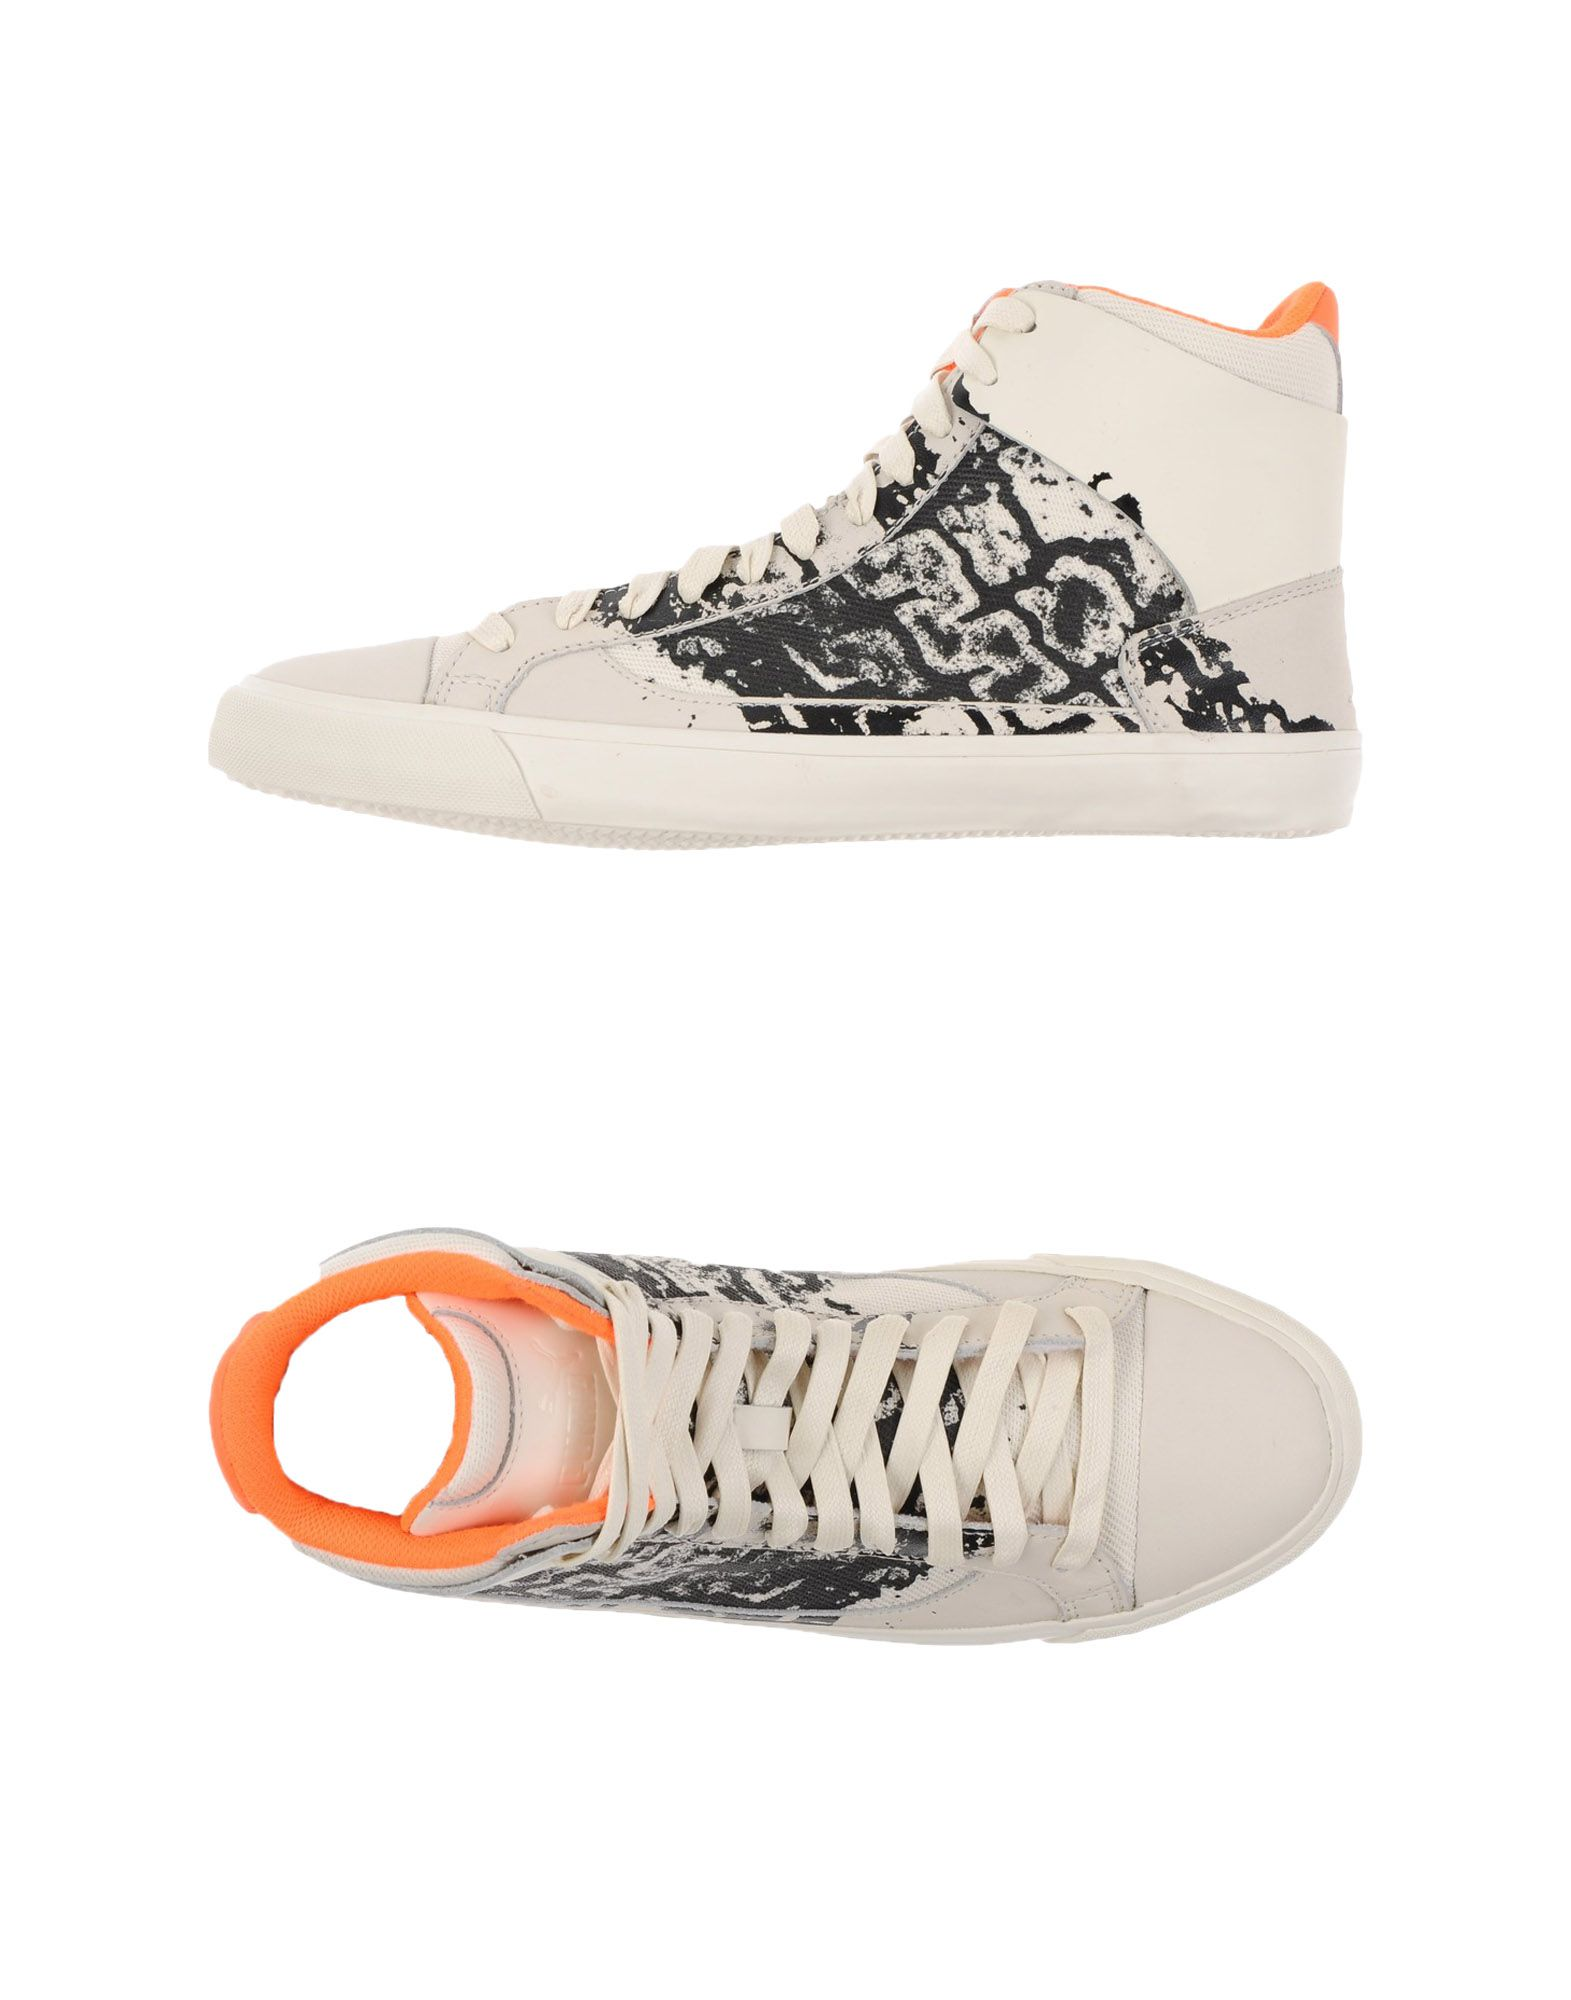 MCQ PUMA Sneakers in Ivory